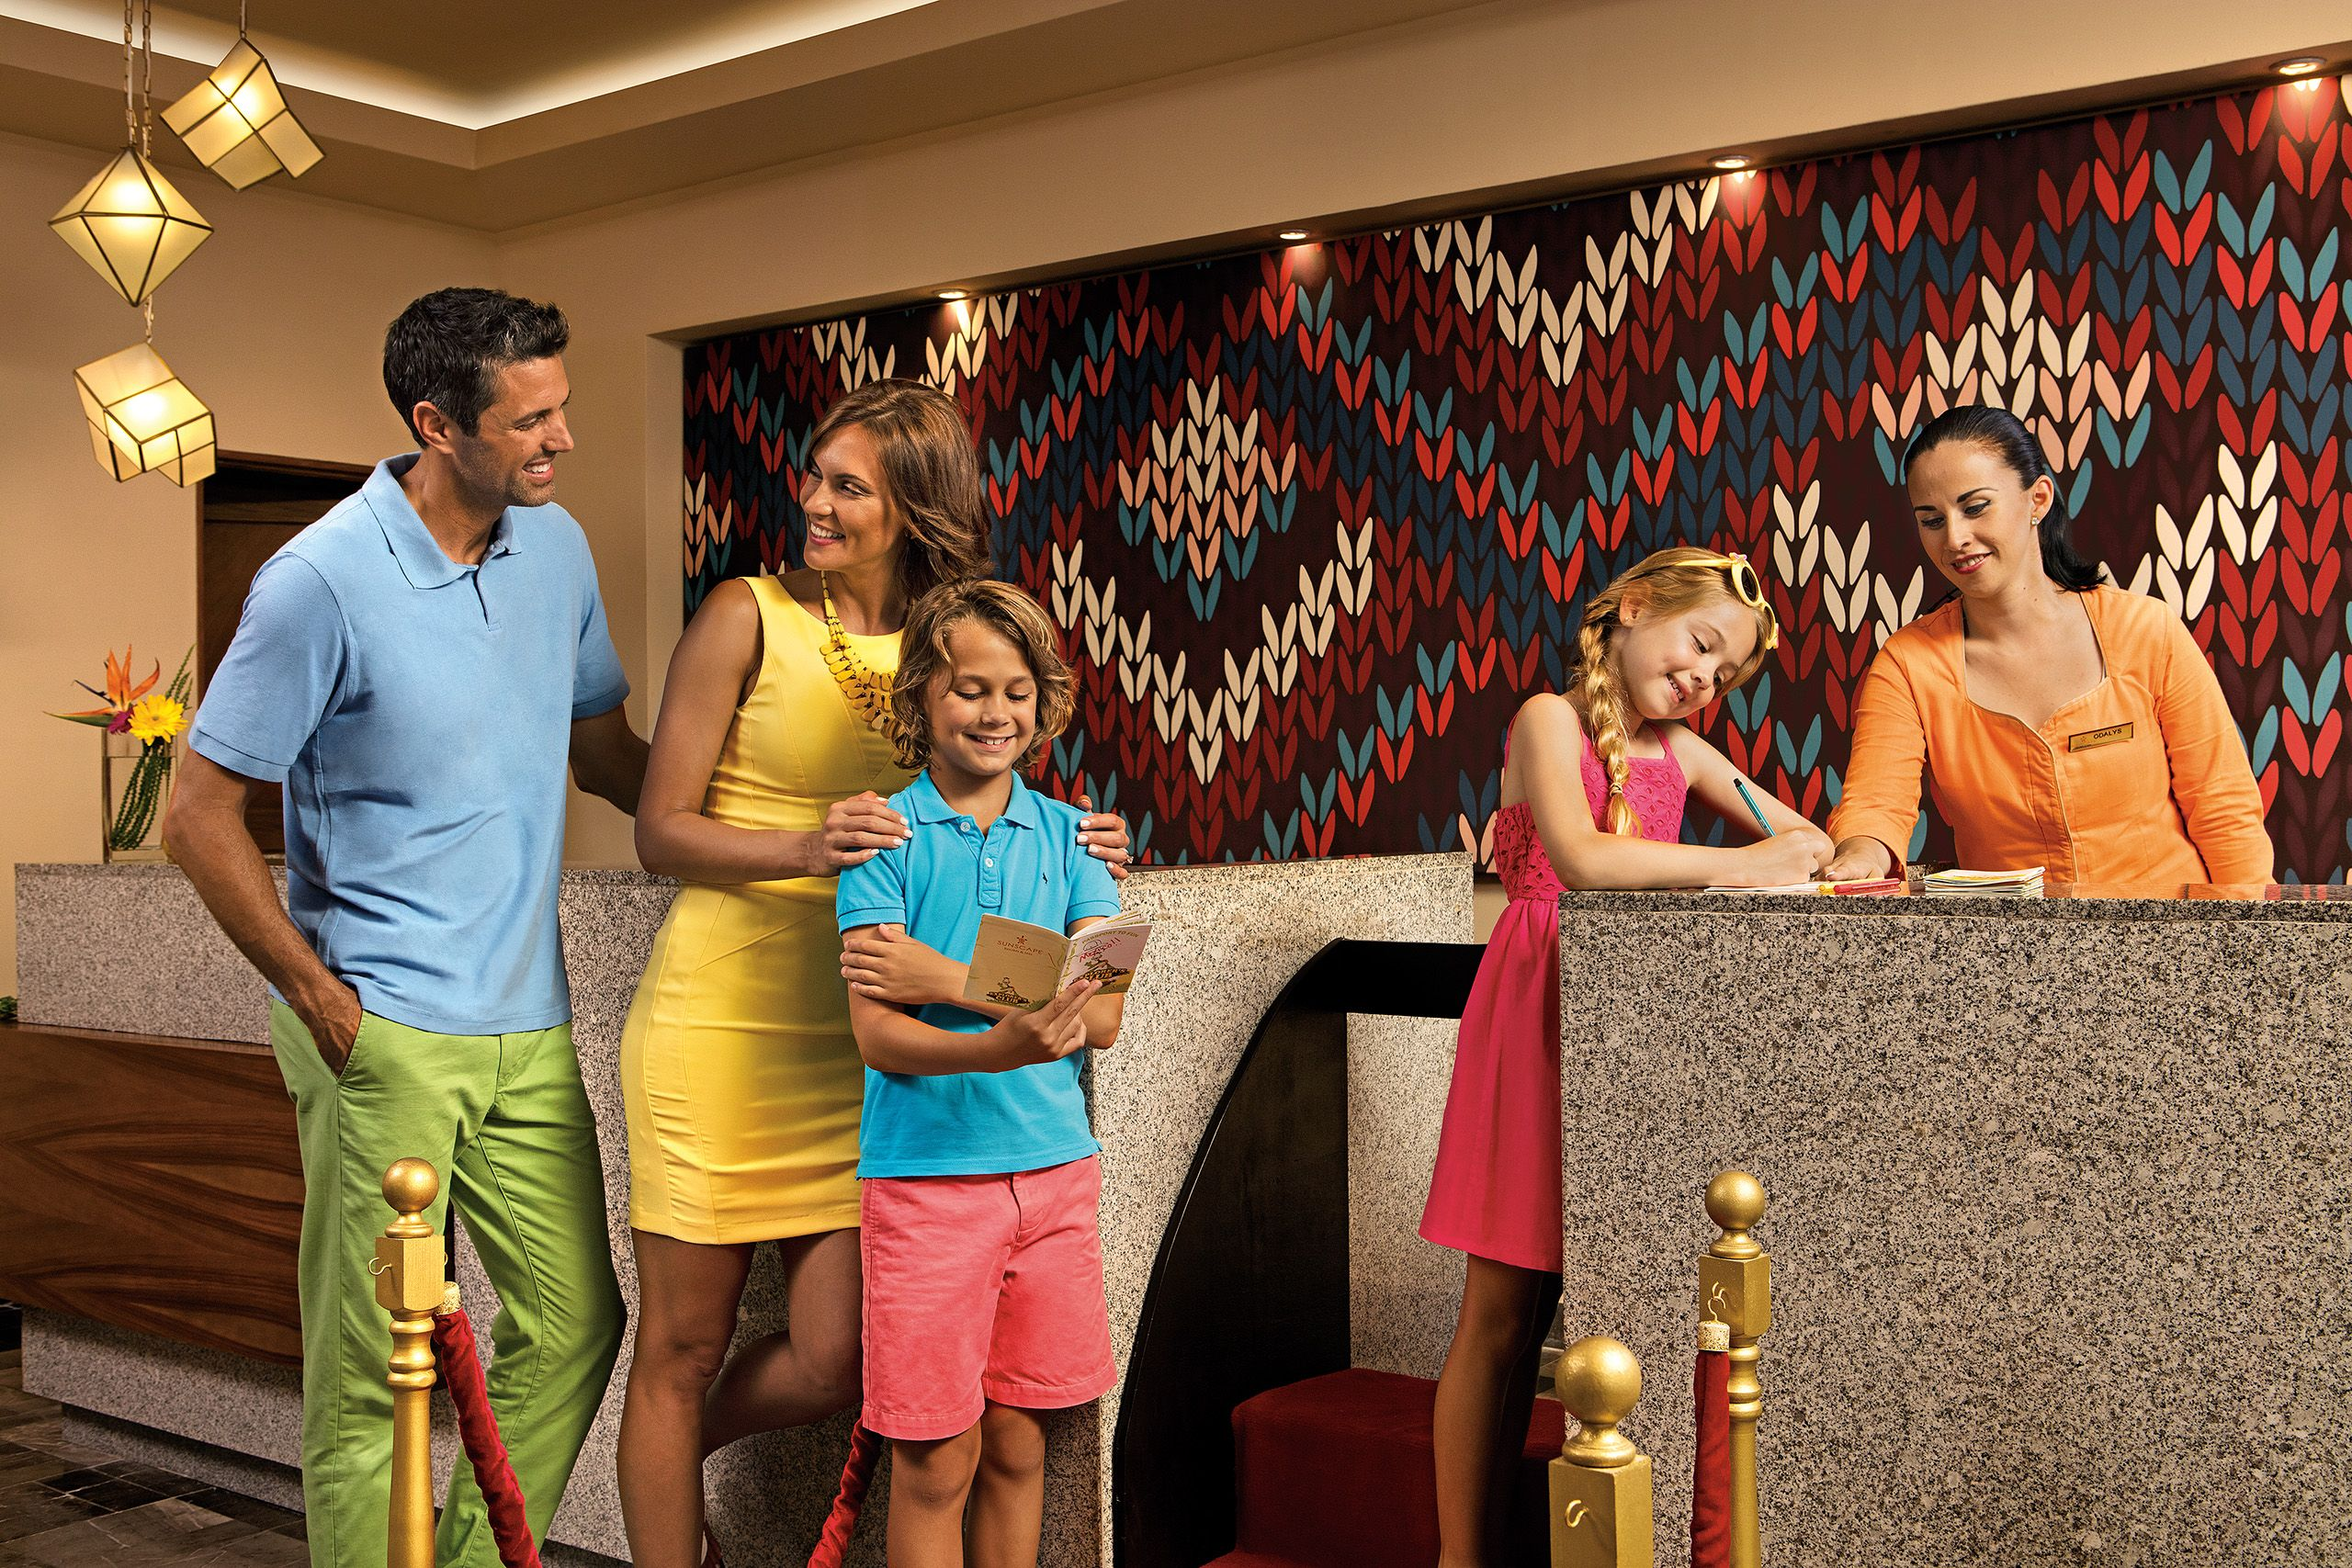 Kids can feel like the kings and queens of the castle when